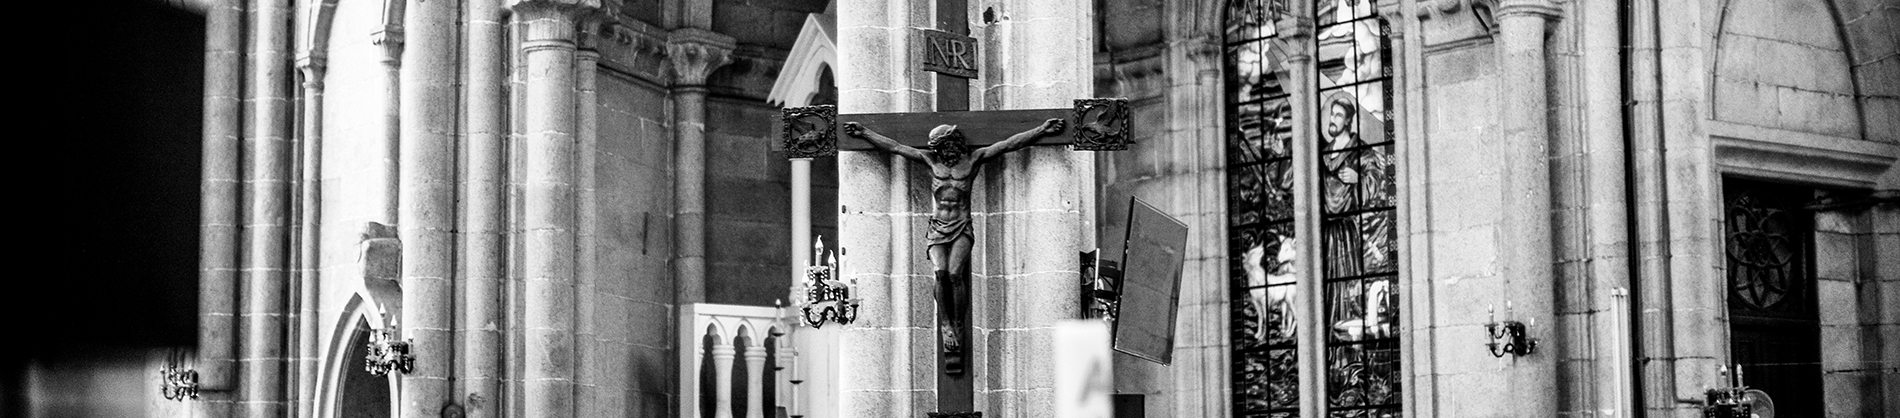 Black and white photo of a church with a statue of Jesus on the cross on the wall